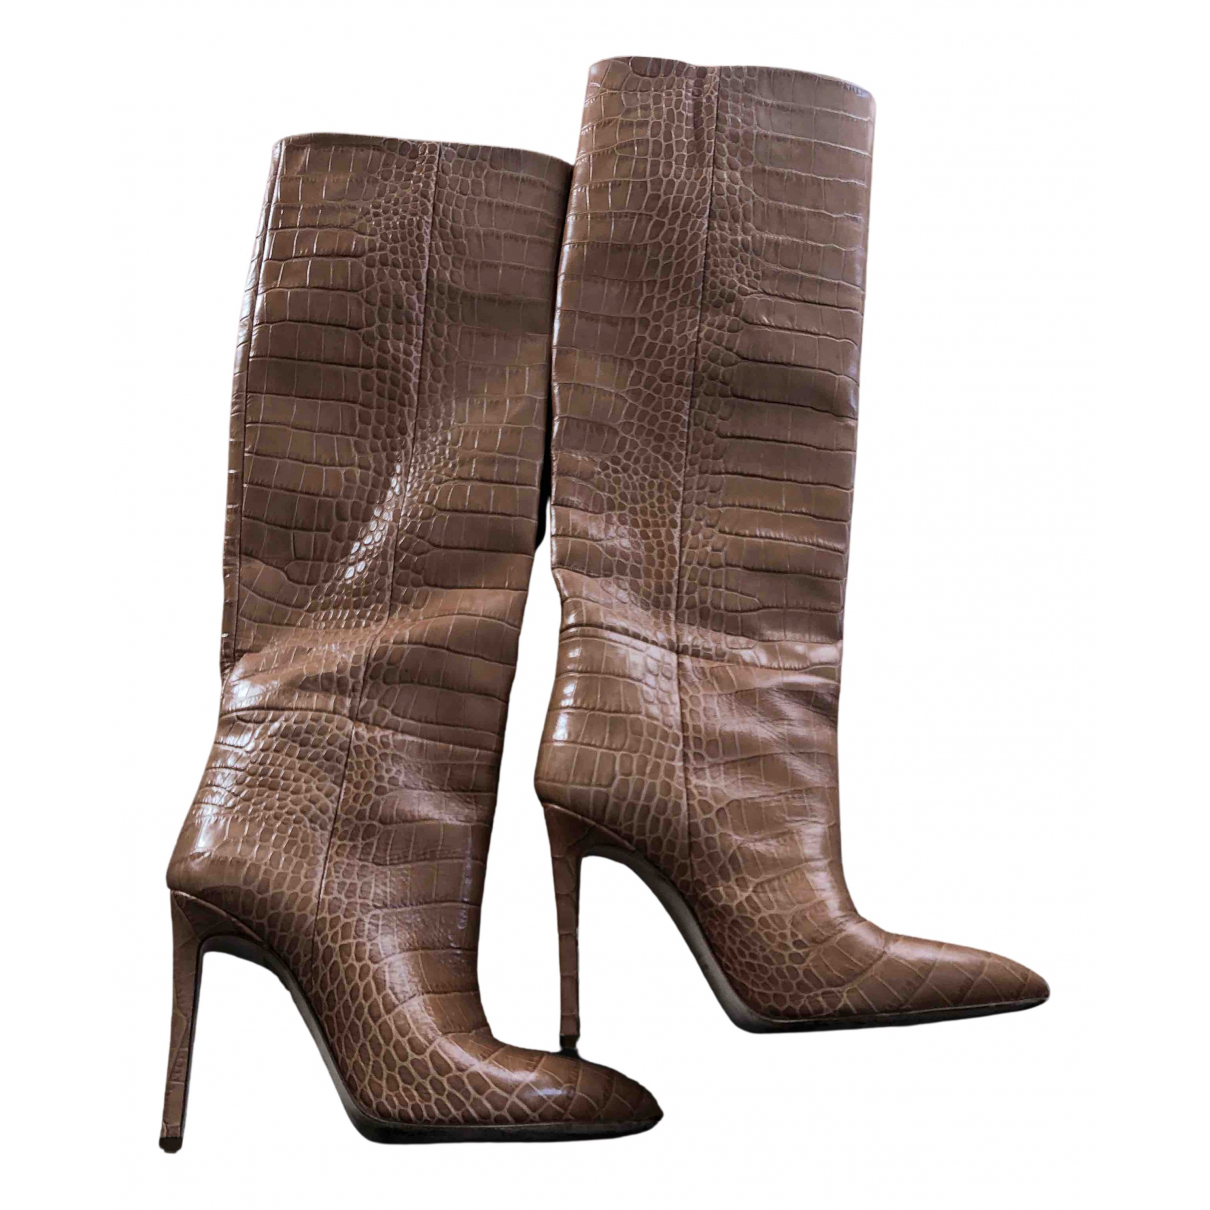 Paris Texas N Brown Leather Boots for Women 36 EU